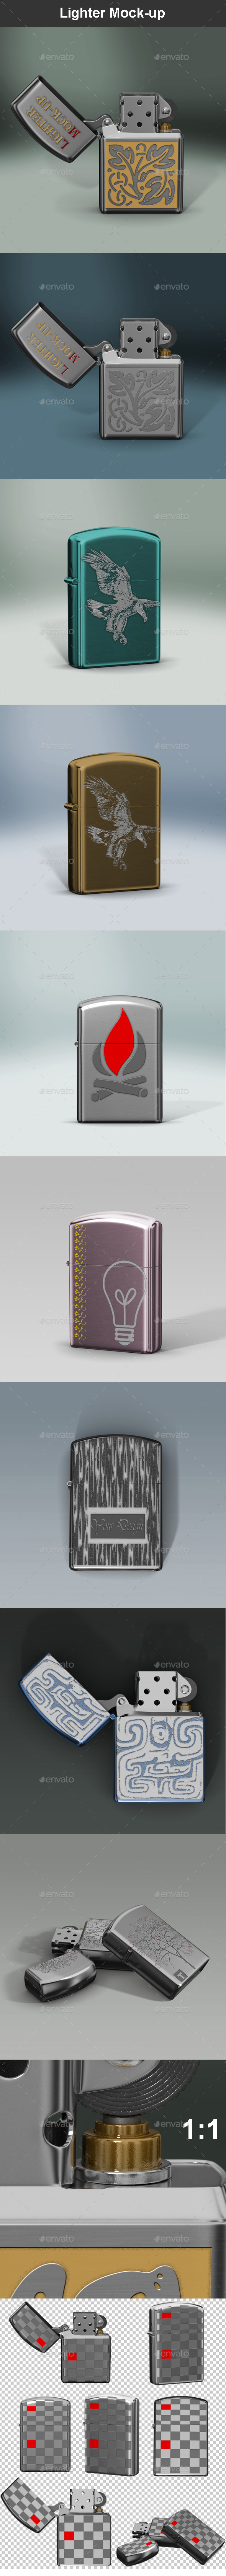 Lighter Mock-up - Miscellaneous Product Mock-Ups